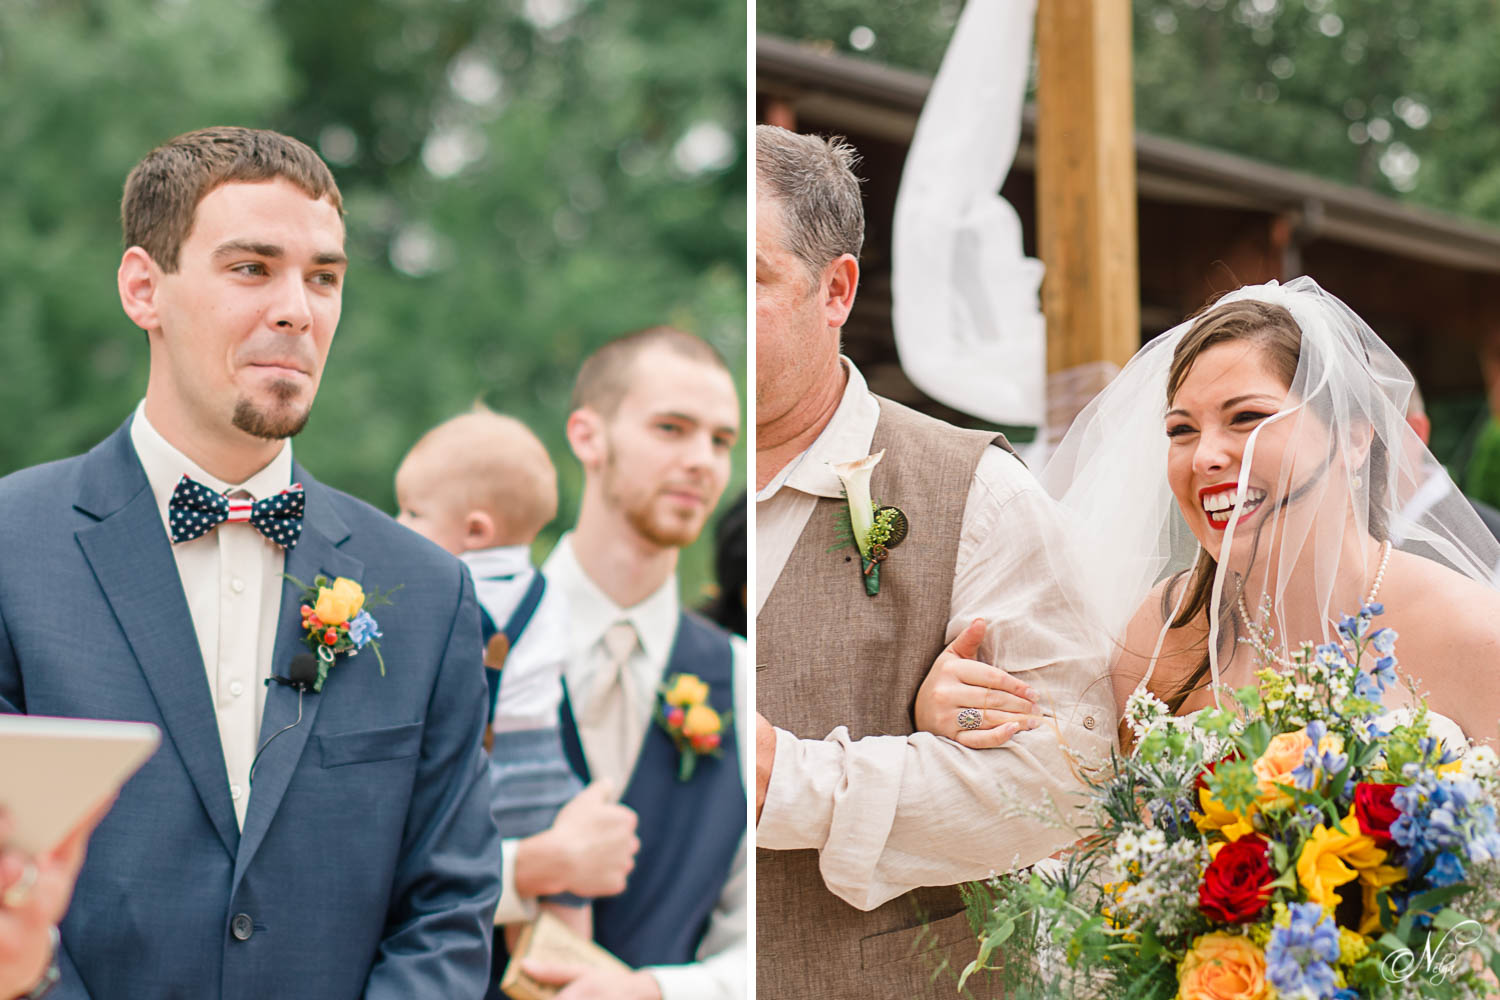 grooms reaction when seeing his bride